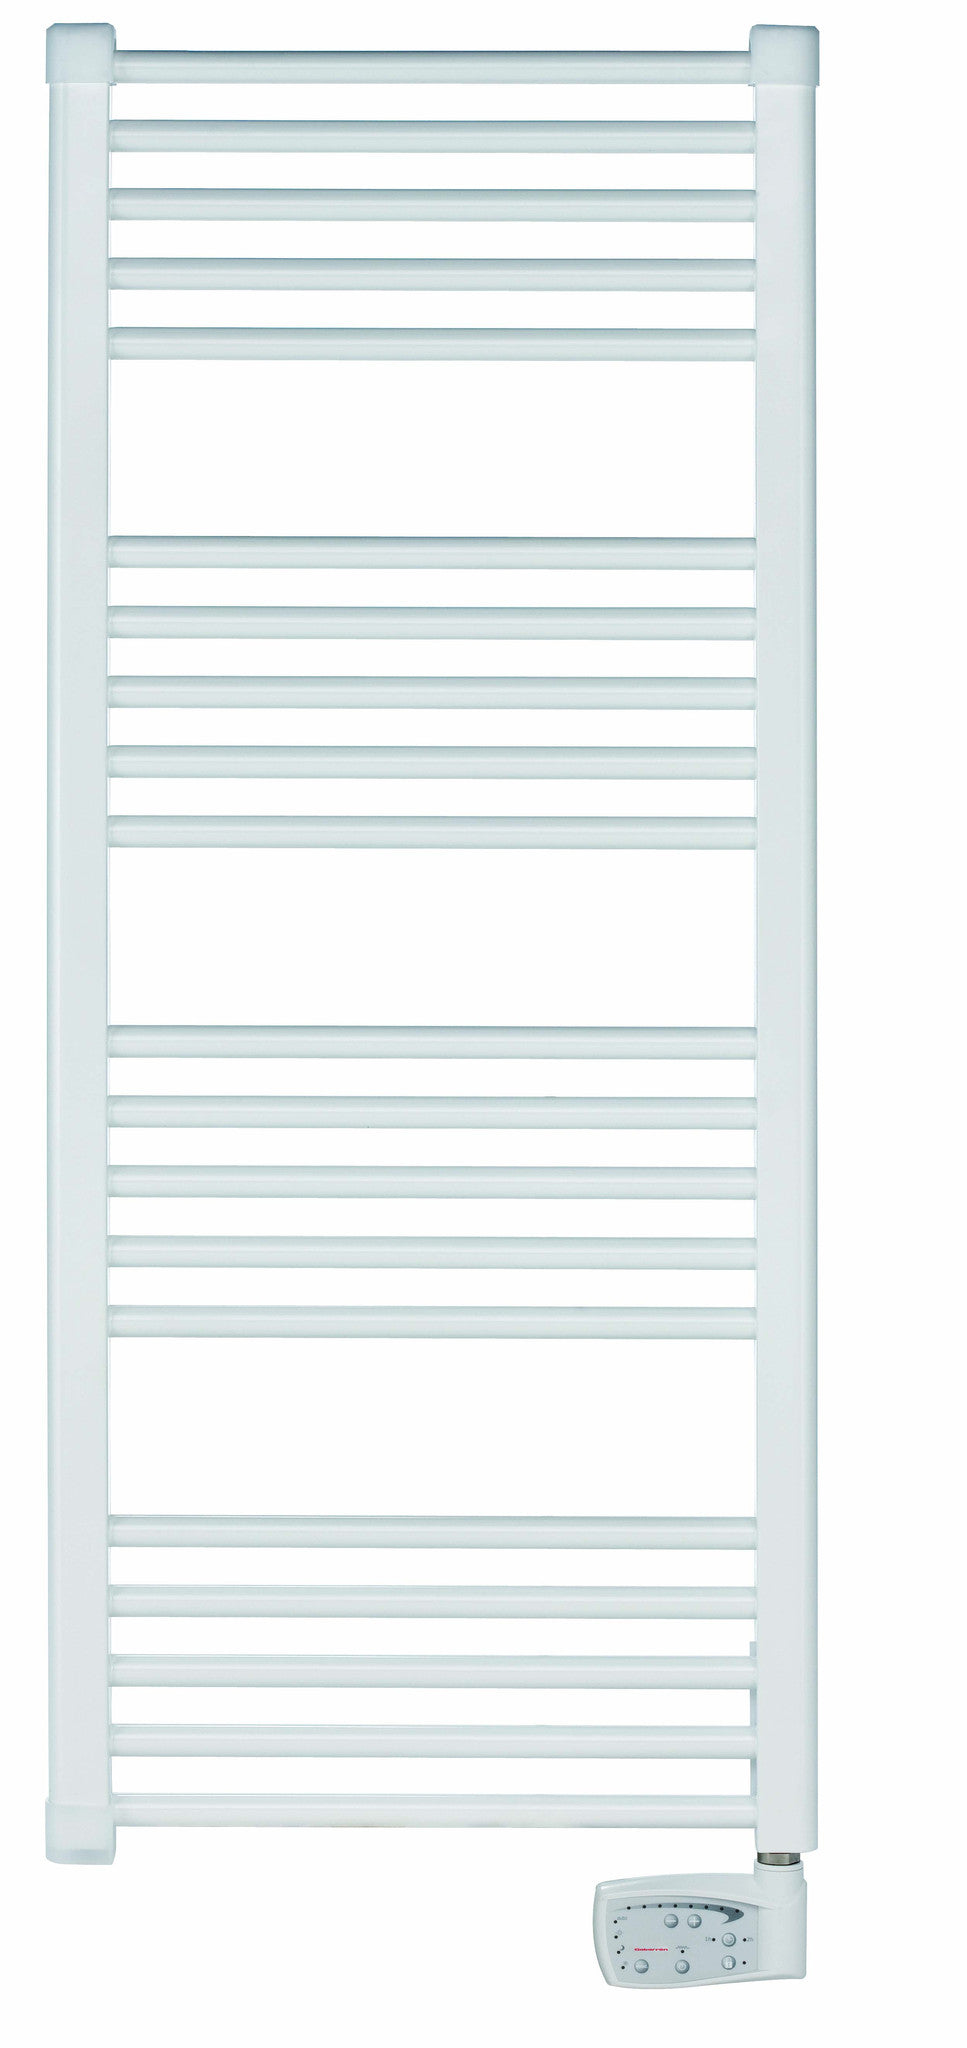 elnur tbbi Electric Towel Warmer - White